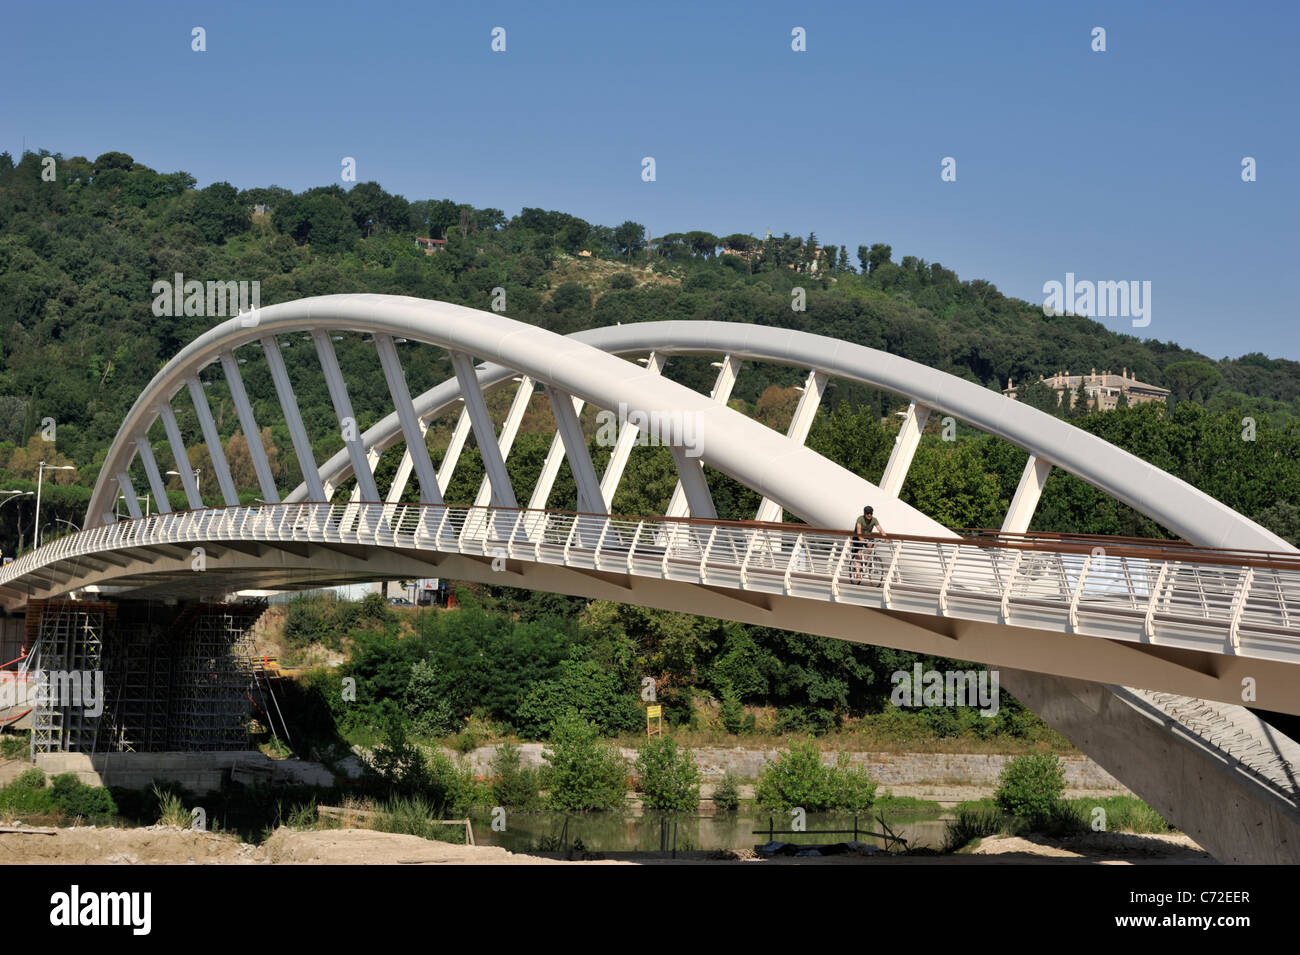 italy, rome, ponte della musica, music bridge, the new pedestrian bridge in rome - Stock Image